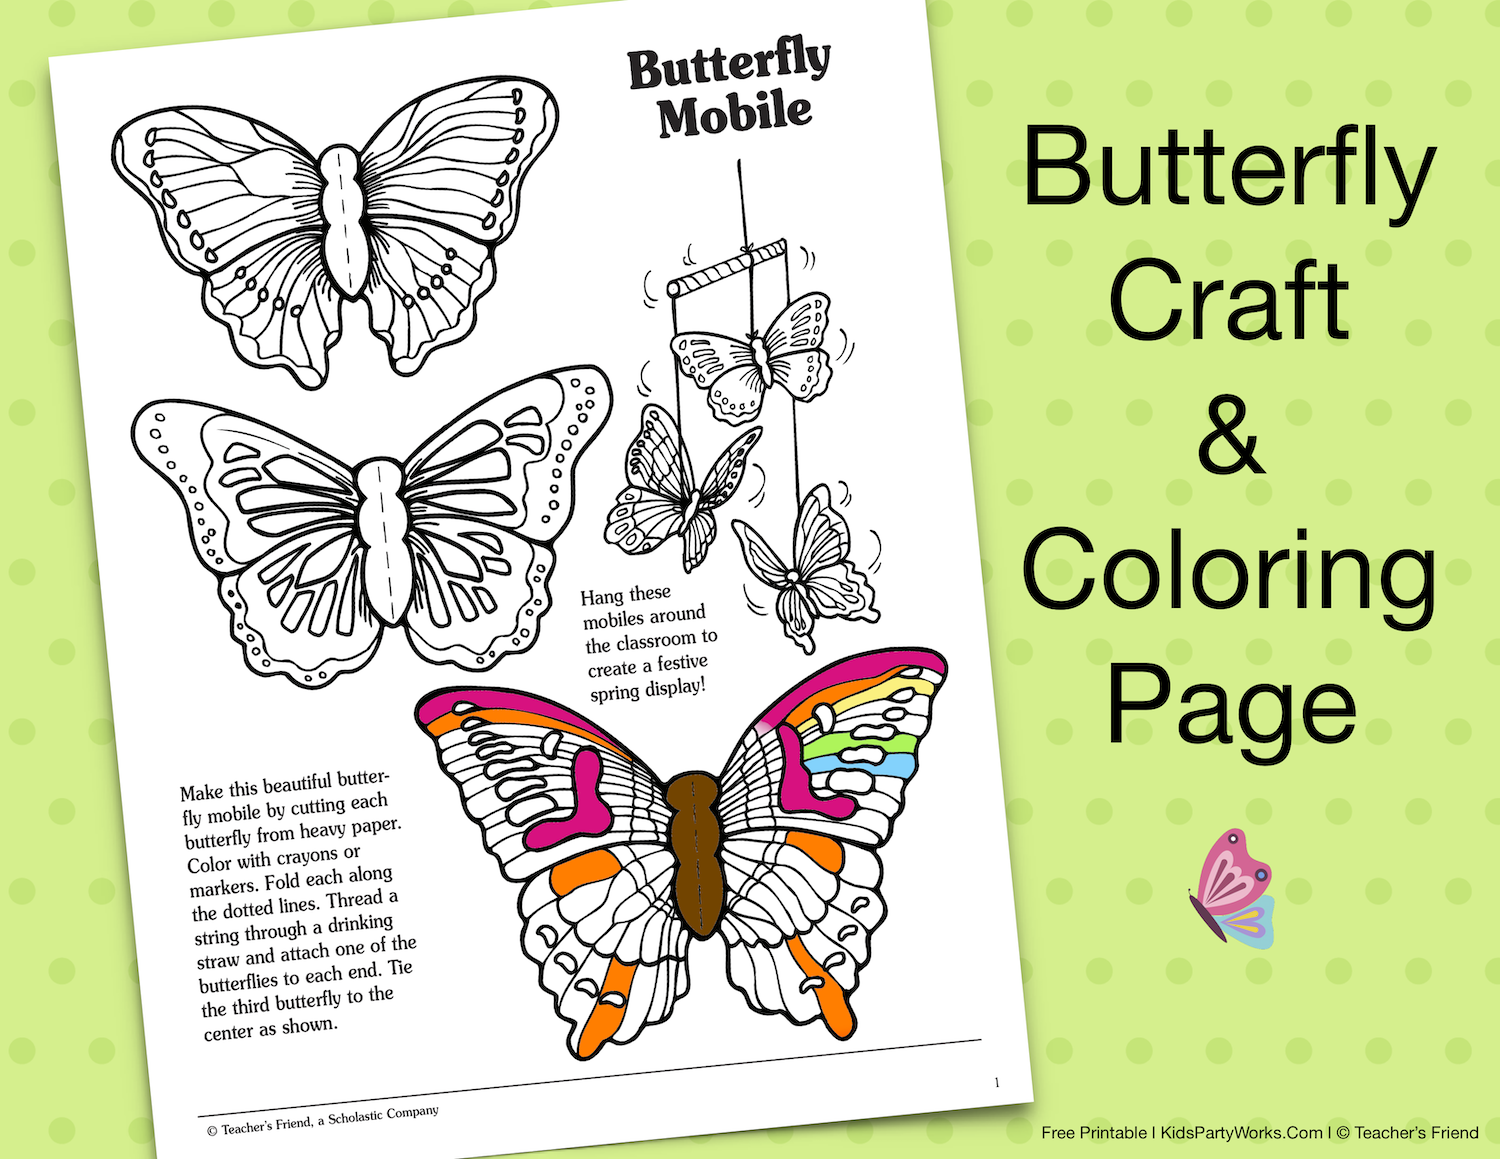 butterfly craft & coloring page